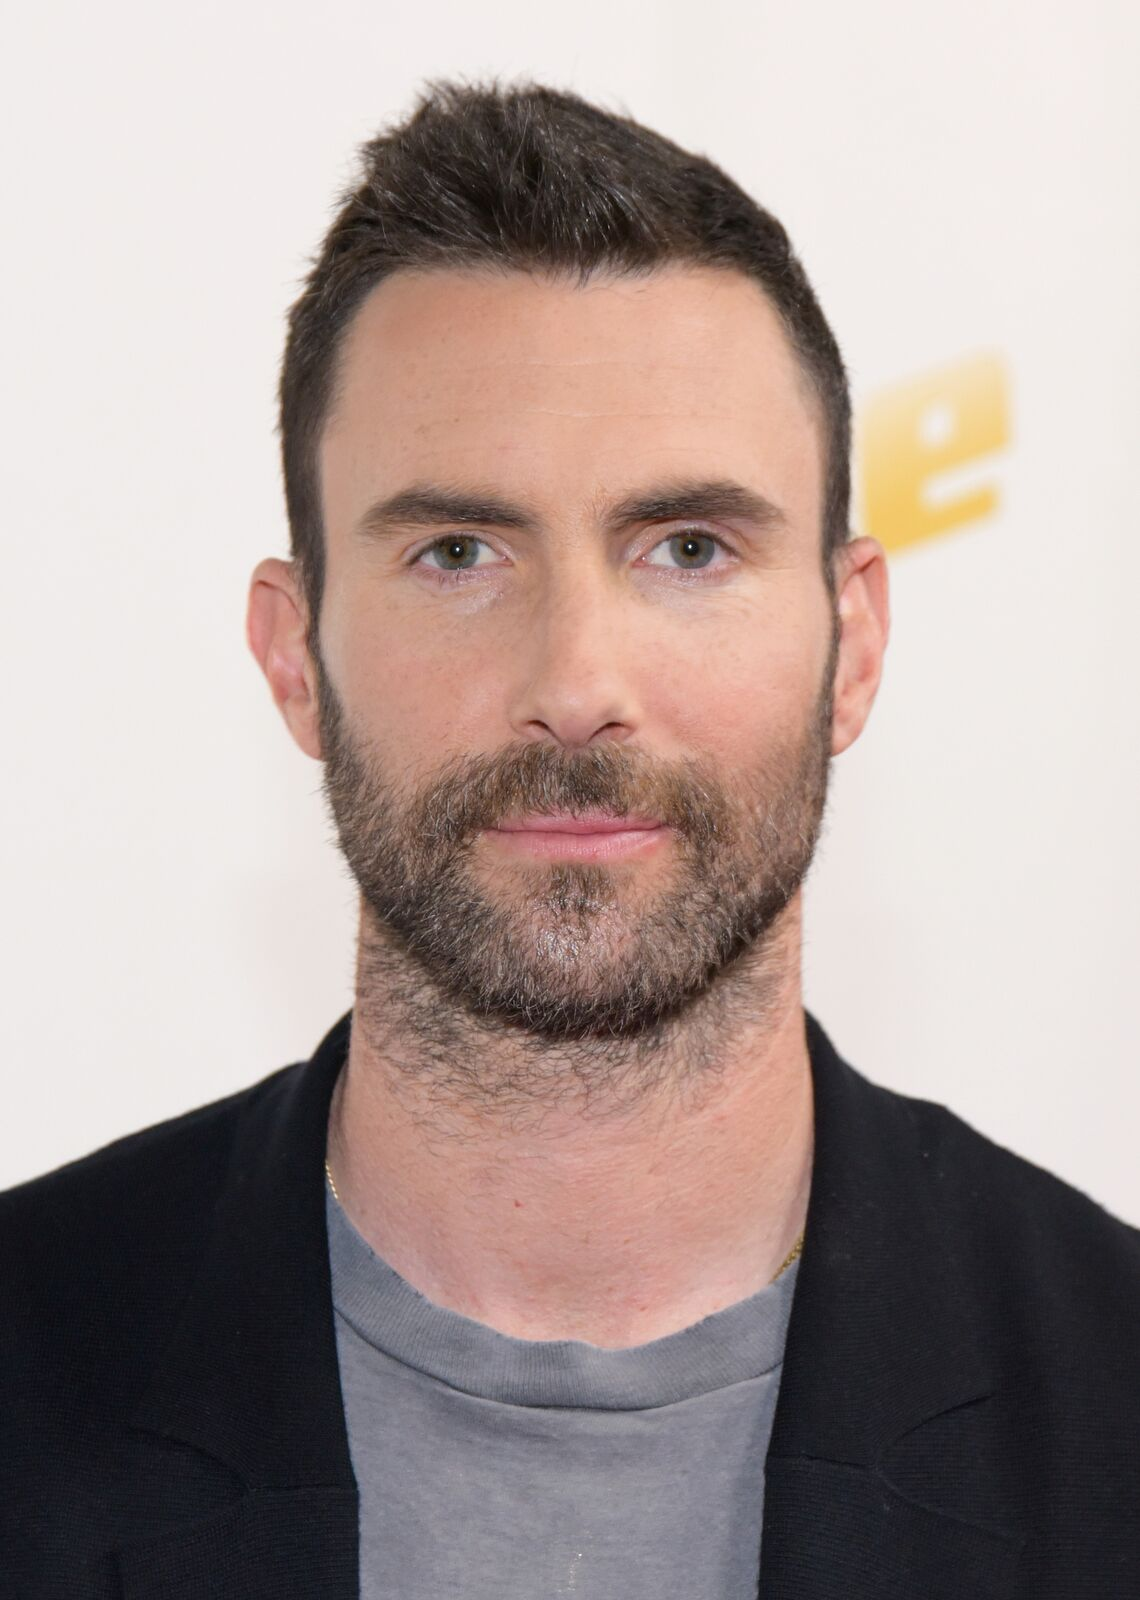 Adam Levine attends NBC's 'The Voice' Season 14 taping on April 23, 2018 in Universal City, California | Photo: Getty Images